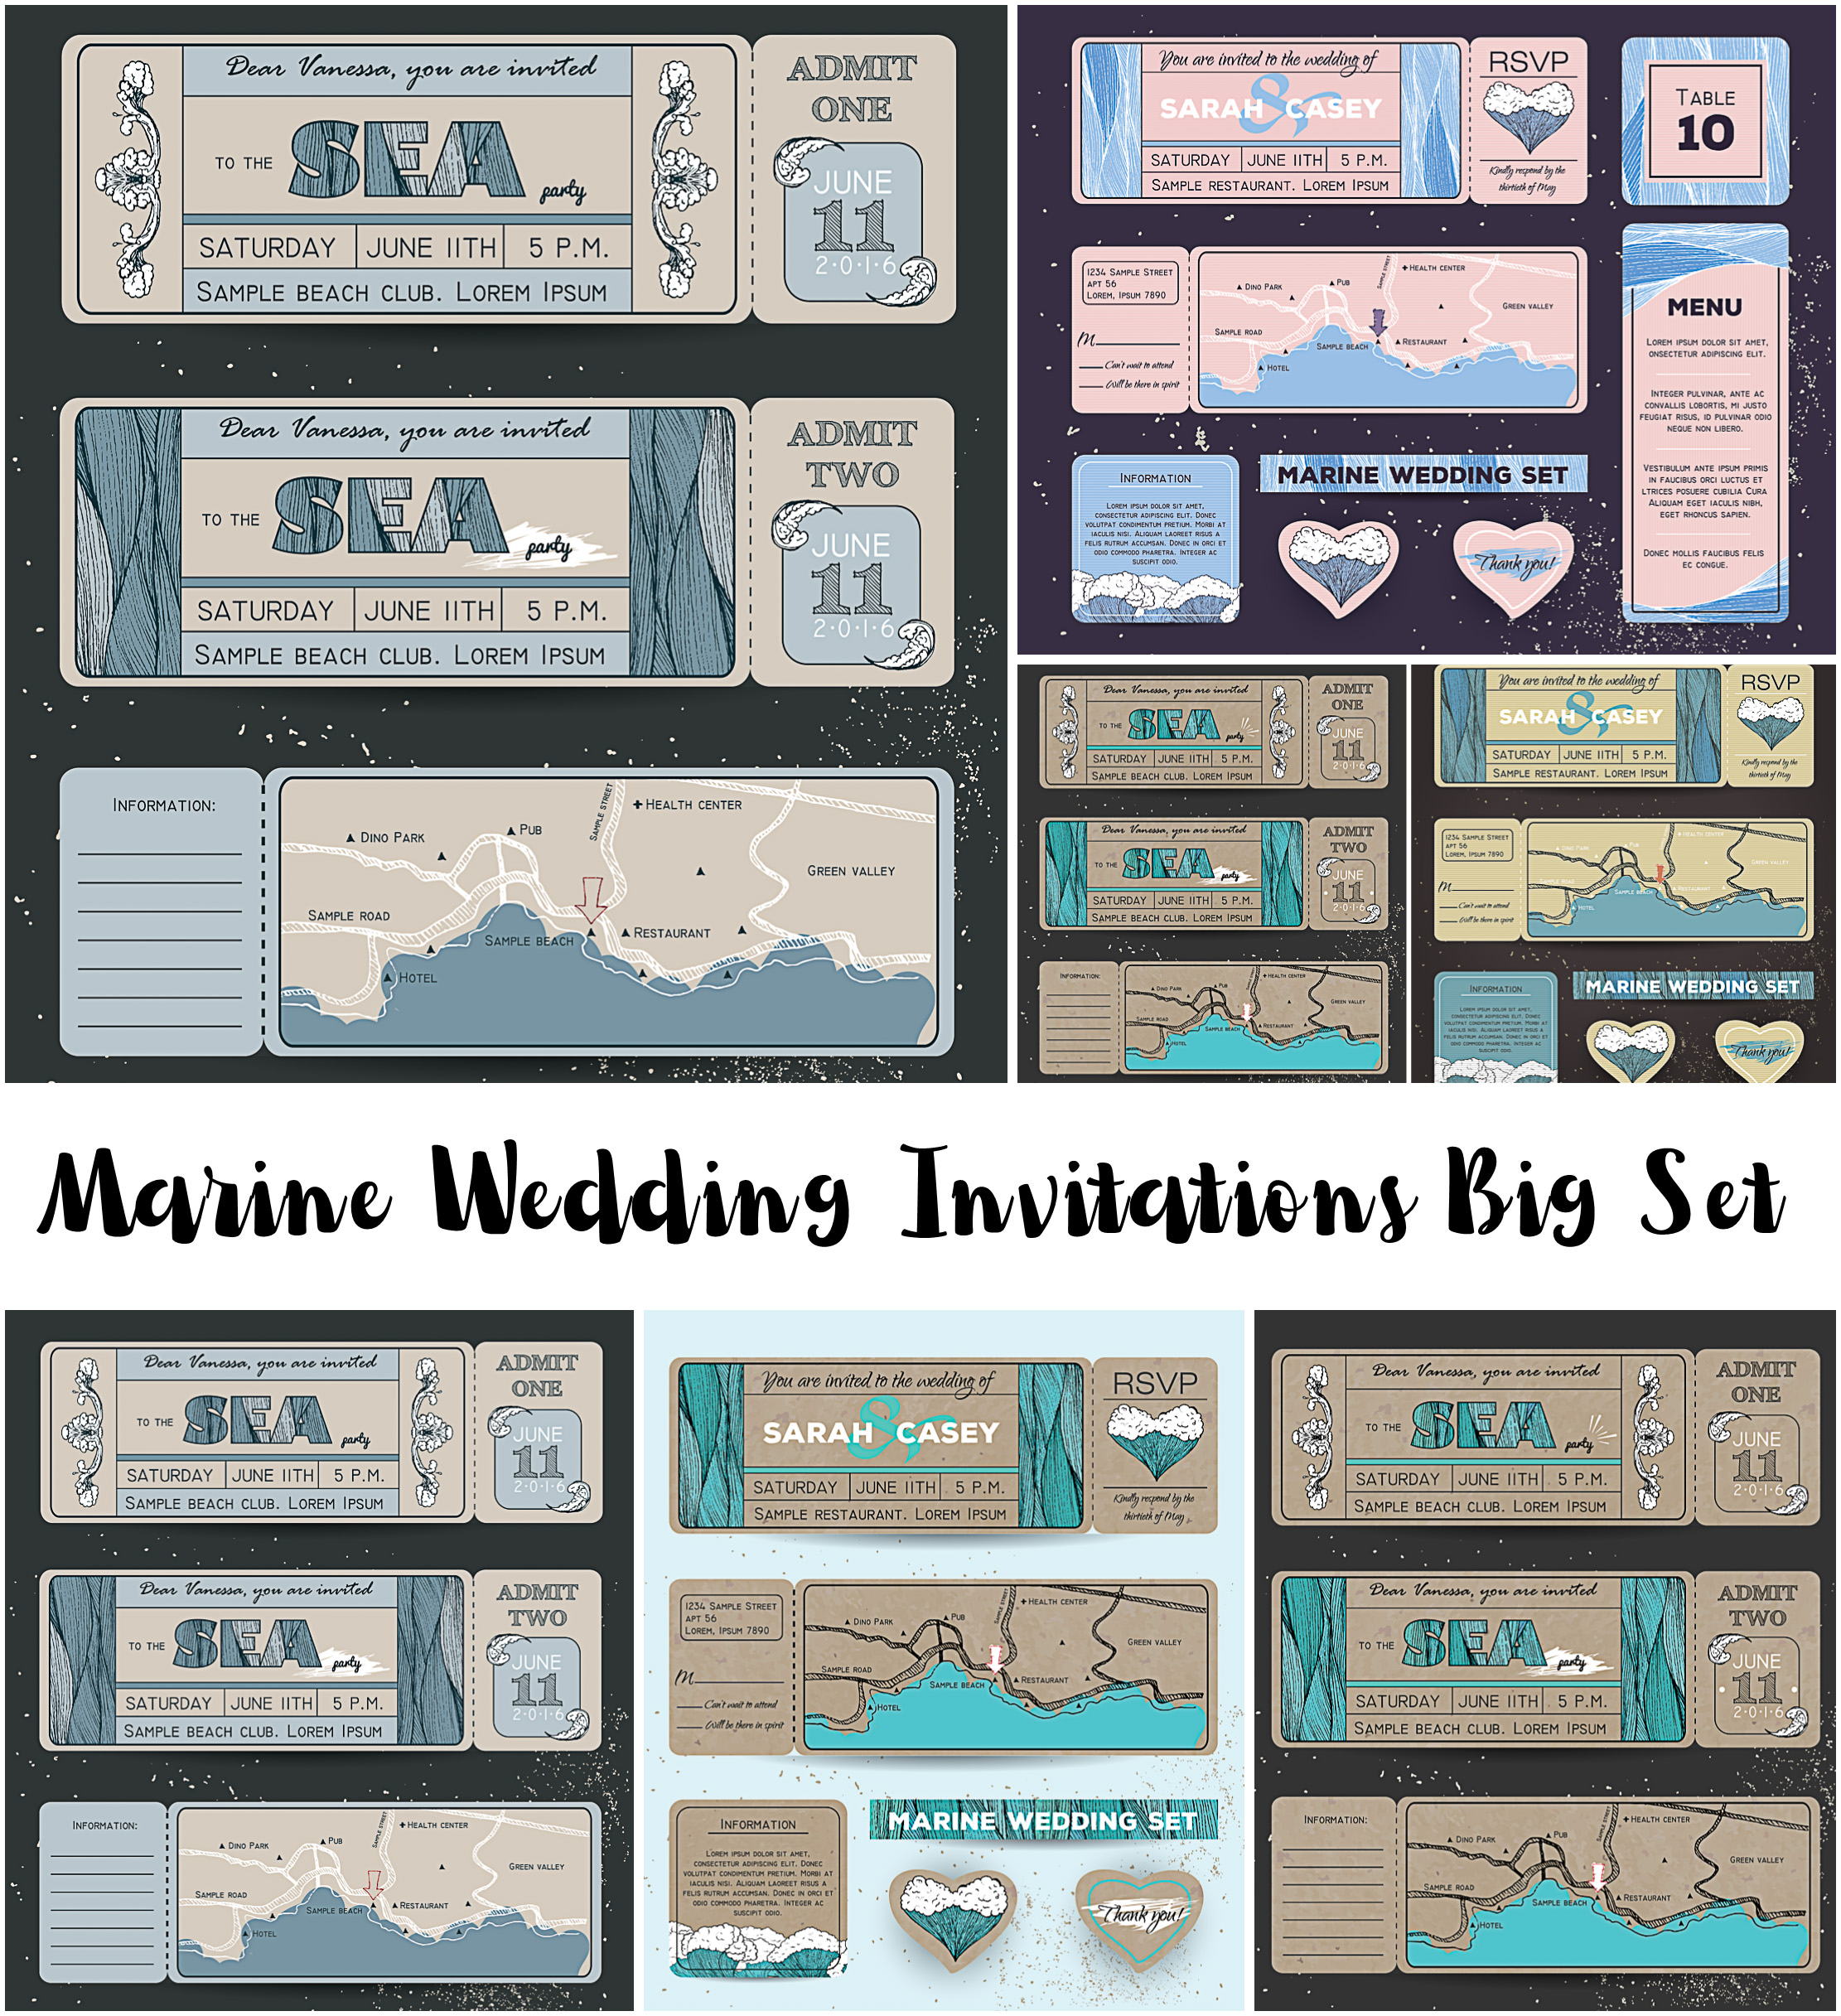 Marine wedding invitations